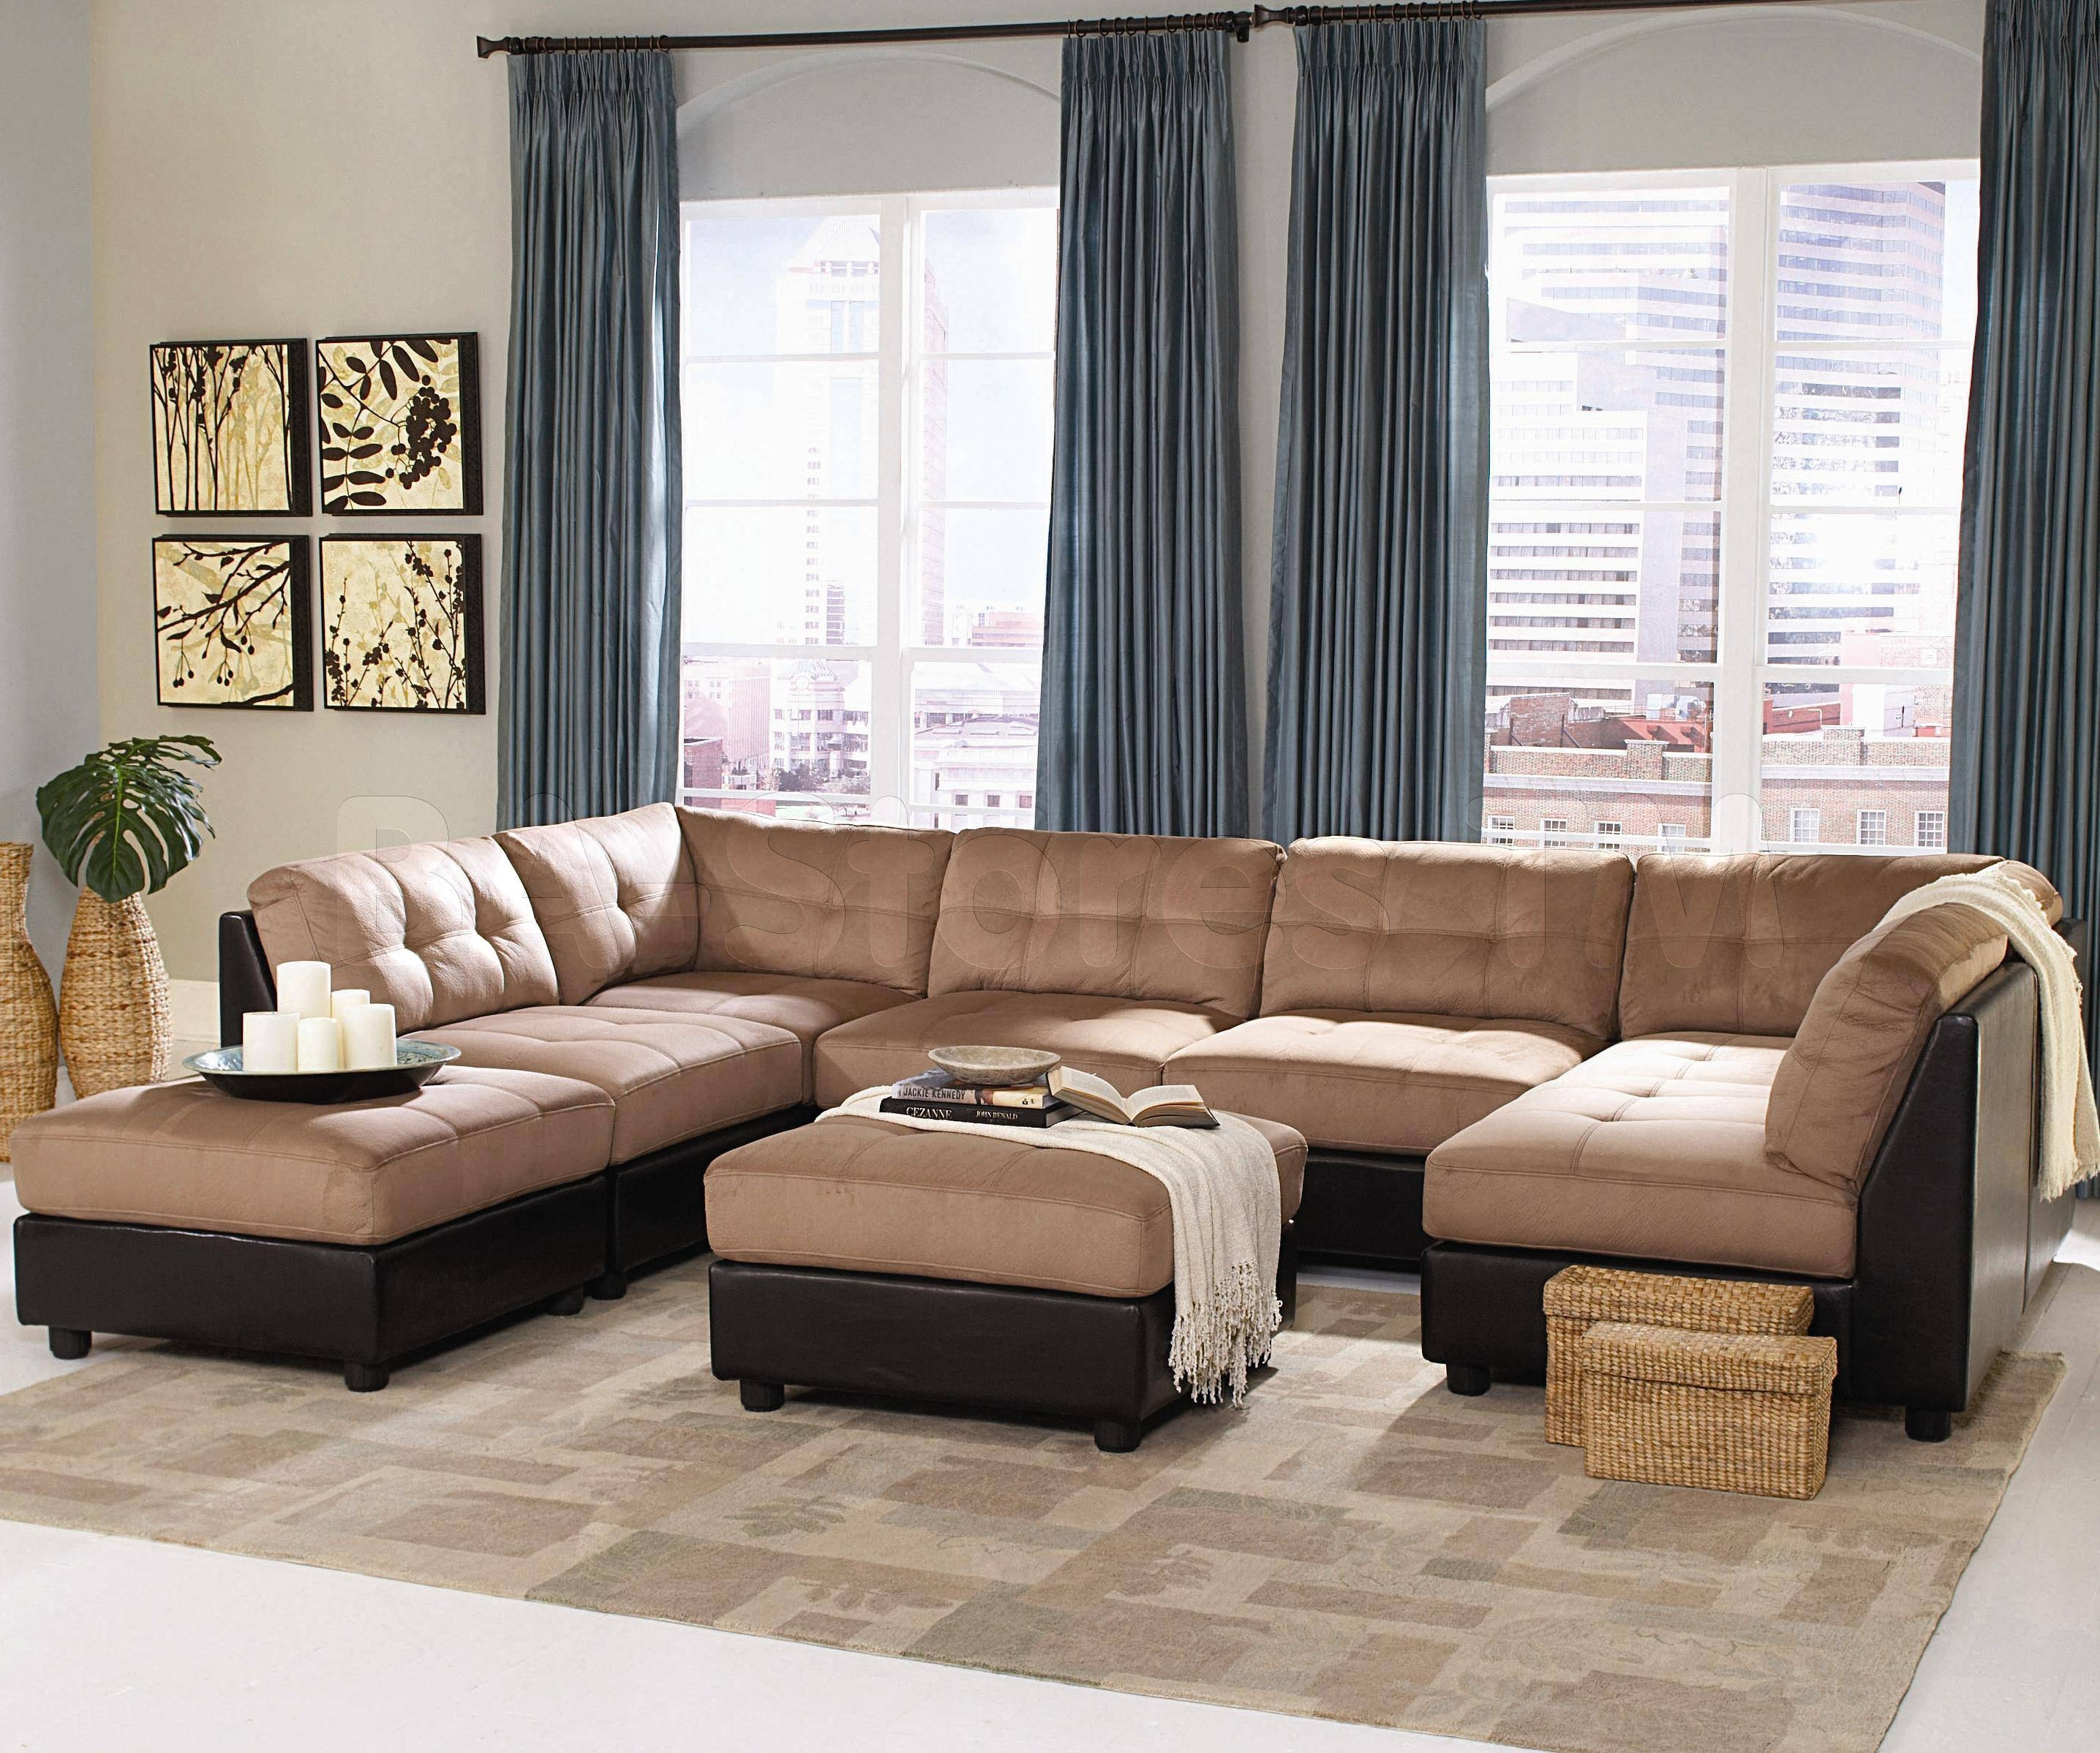 Living Room Furniture Ideas Sectional | Eiforces intended for Traditional Sectional Sofas Living Room Furniture (Image 10 of 25)